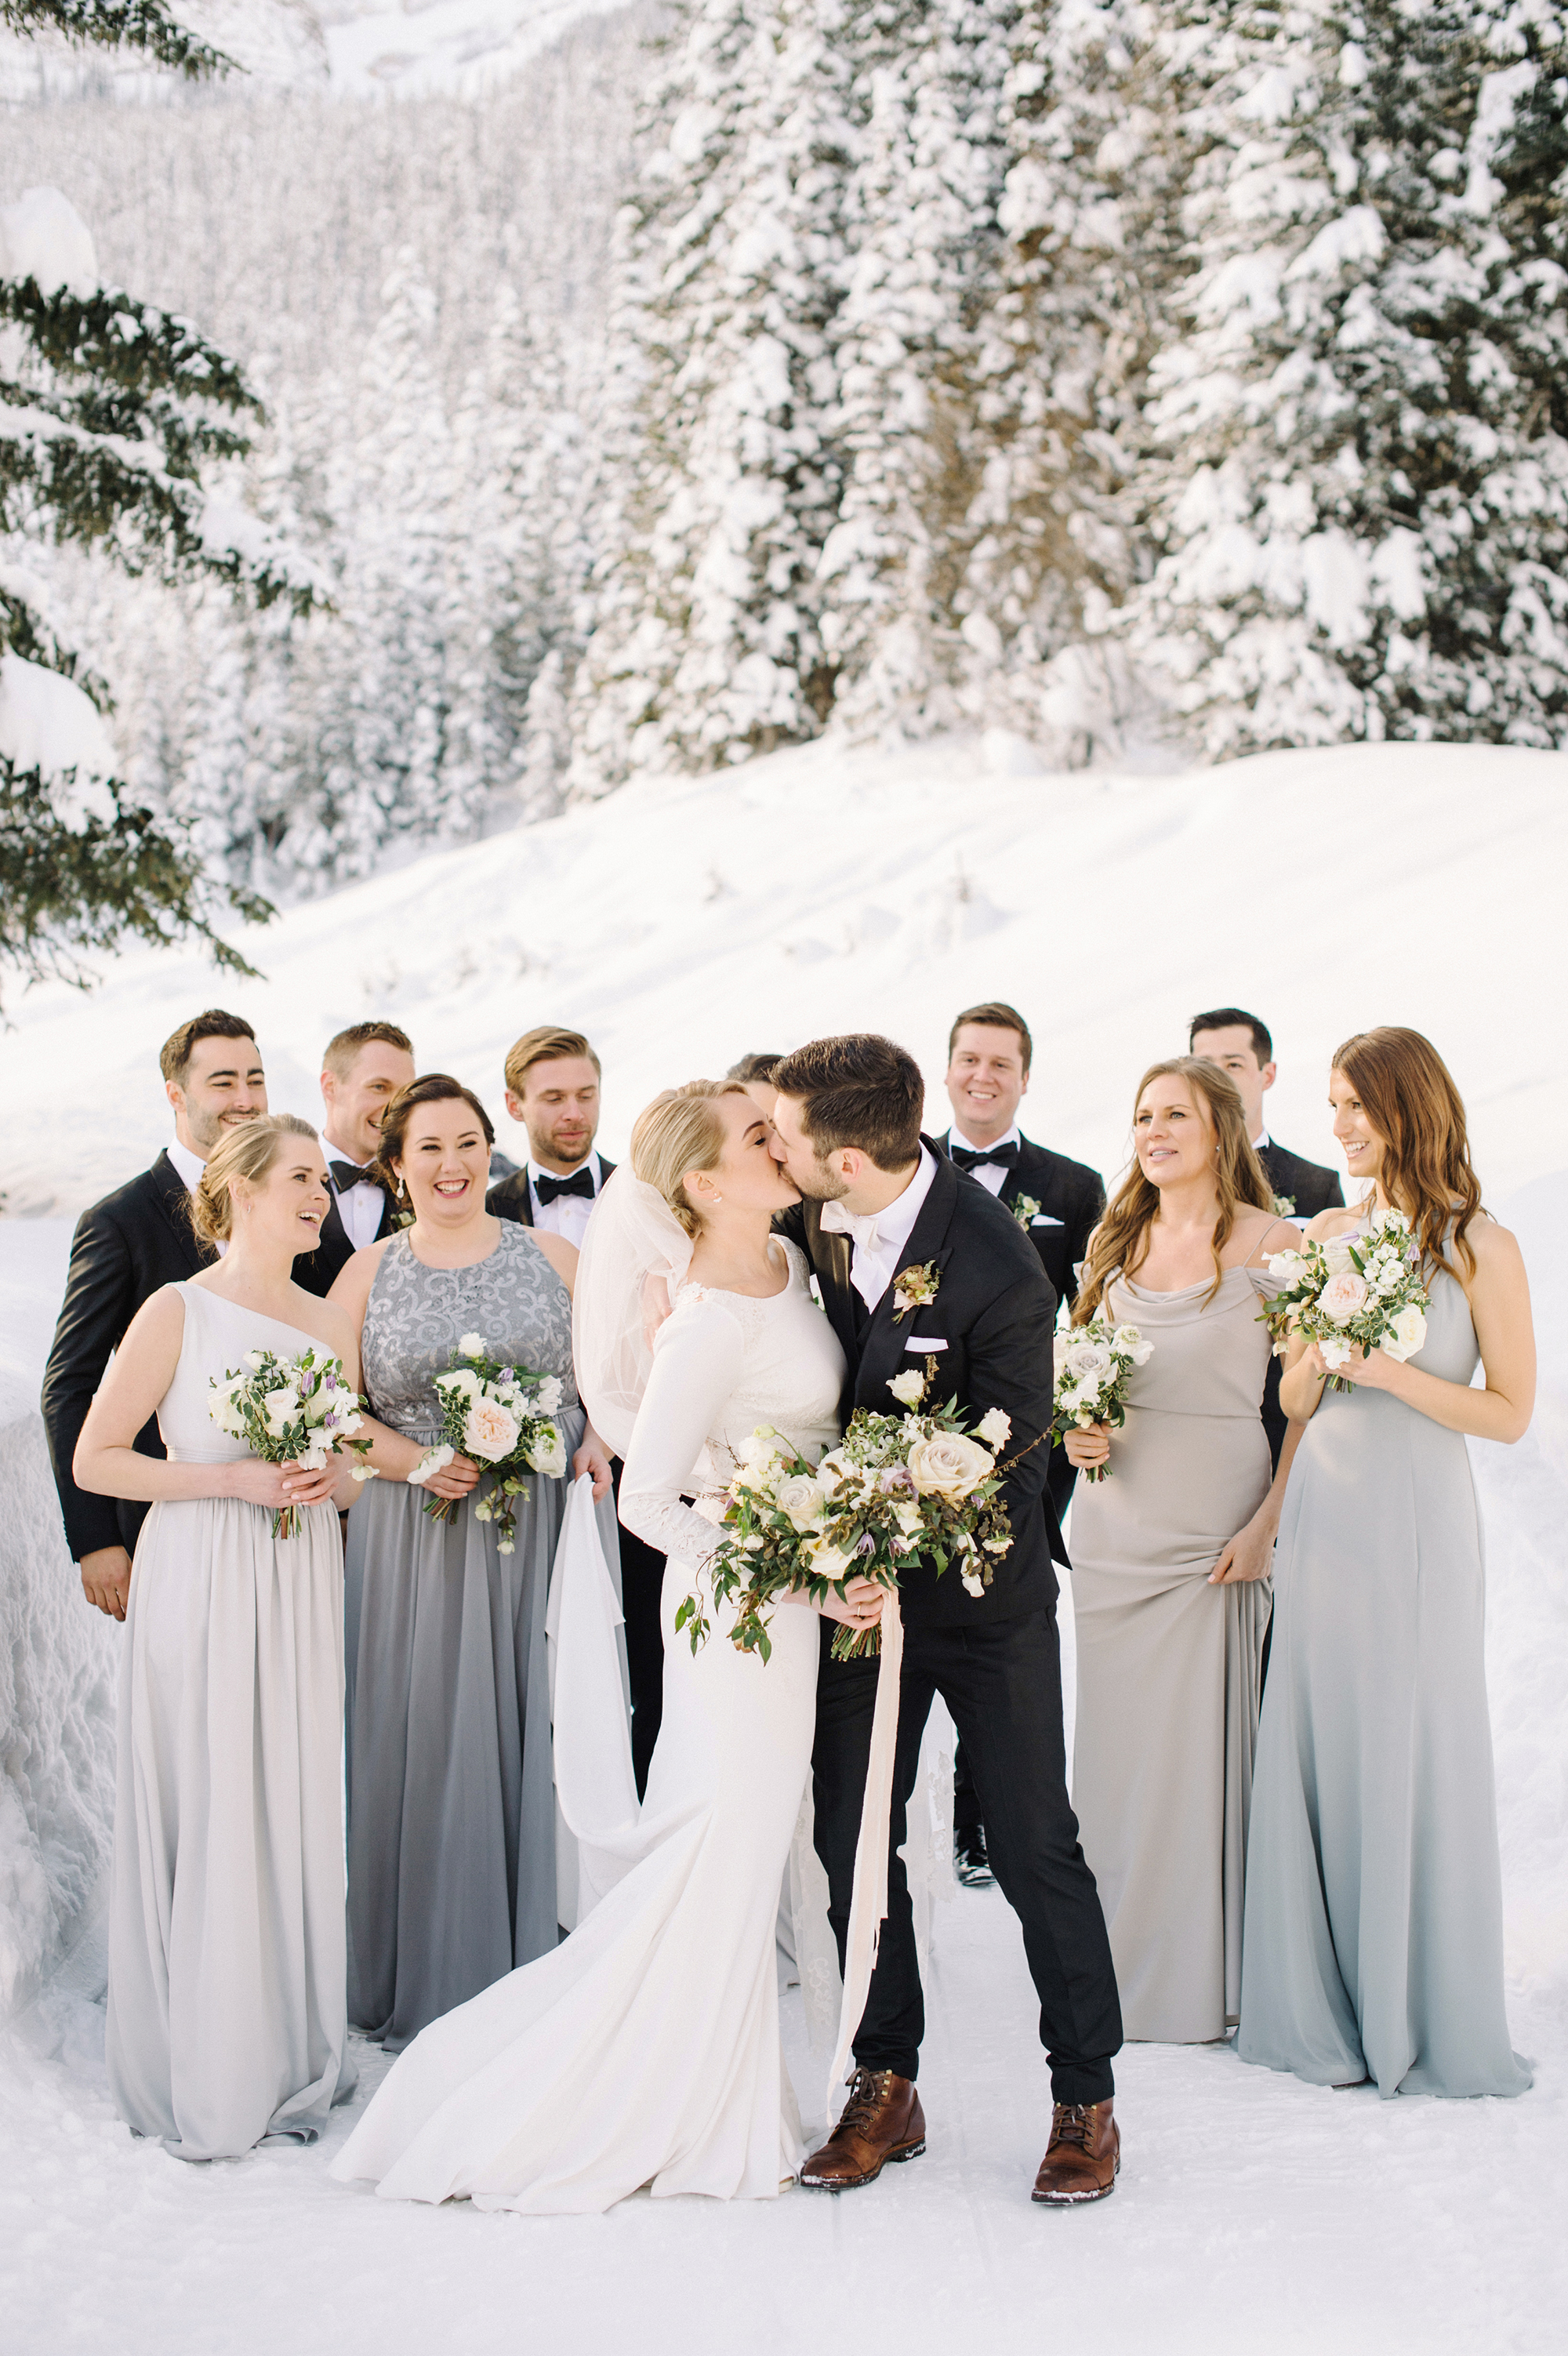 How to Choose a Wedding Party You'll Love